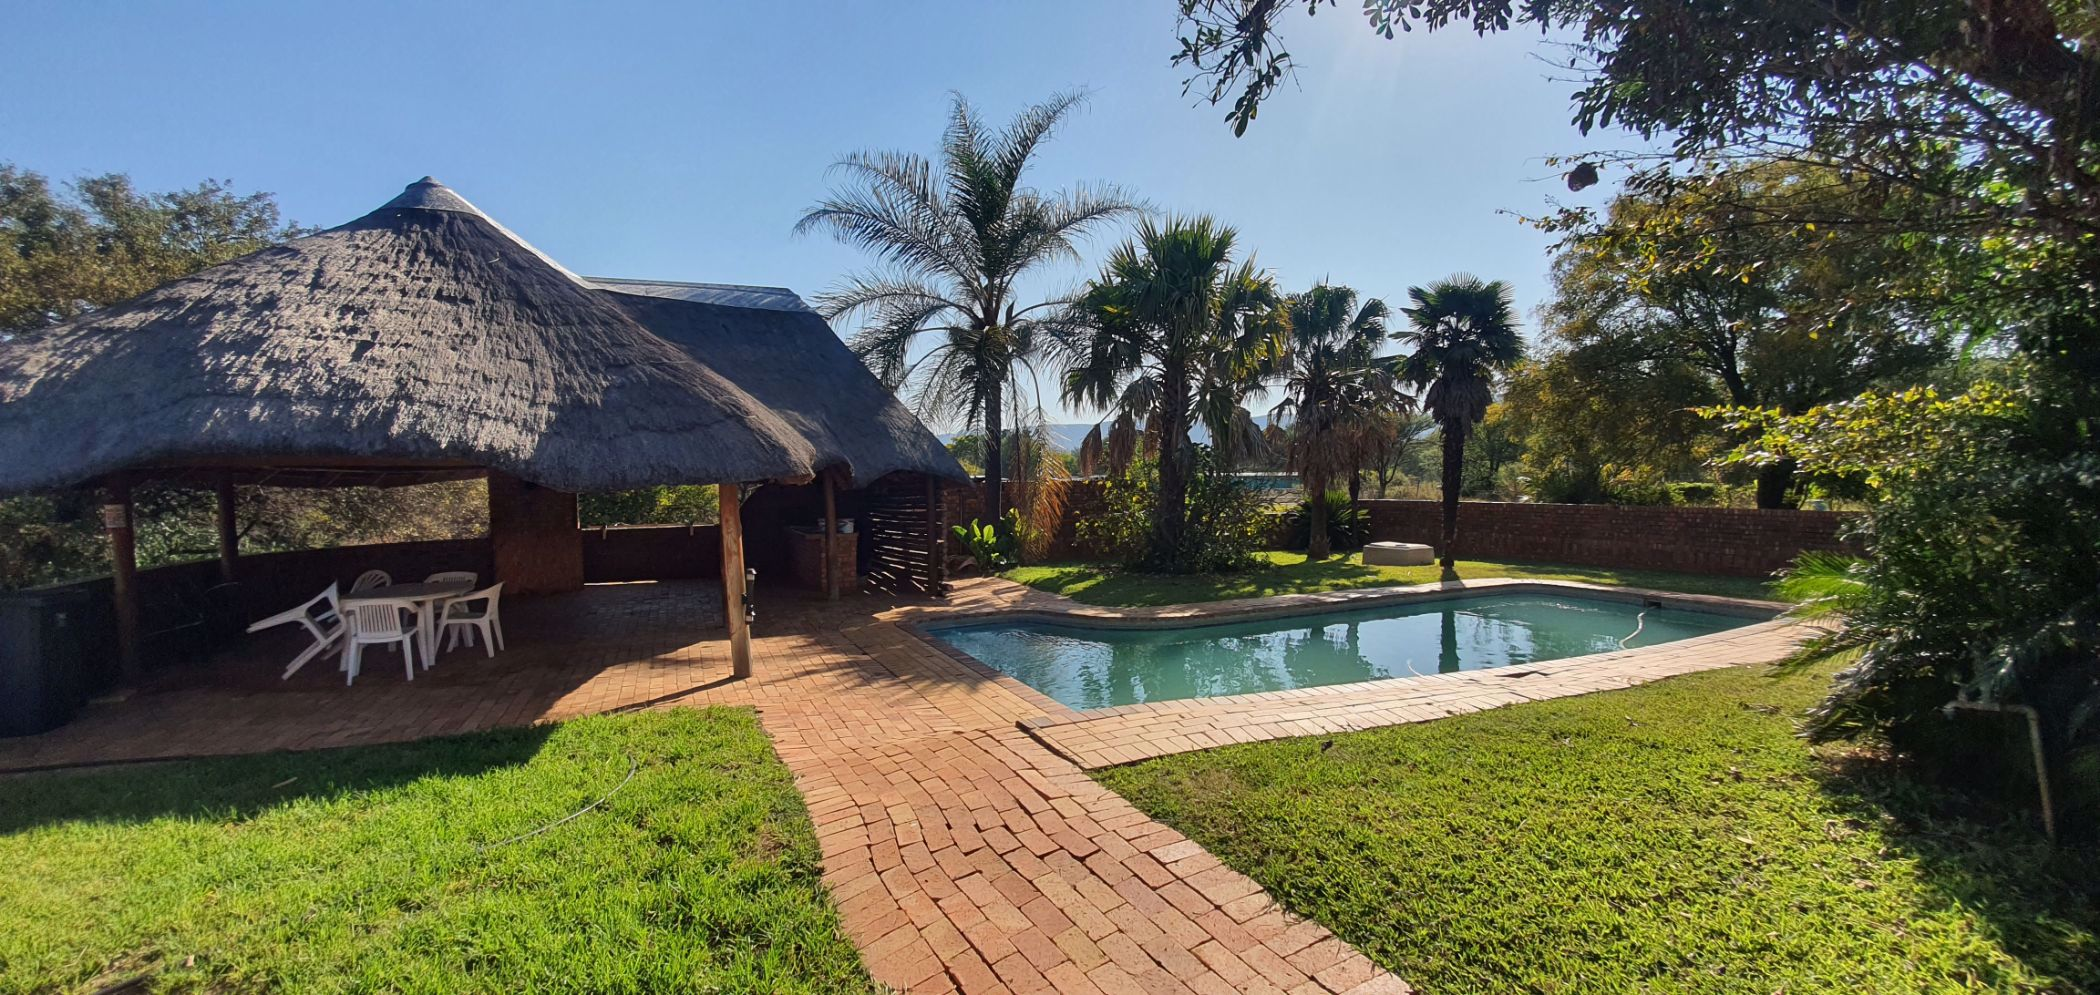 2.04 hectare smallholding for sale in Kameeldrift AH